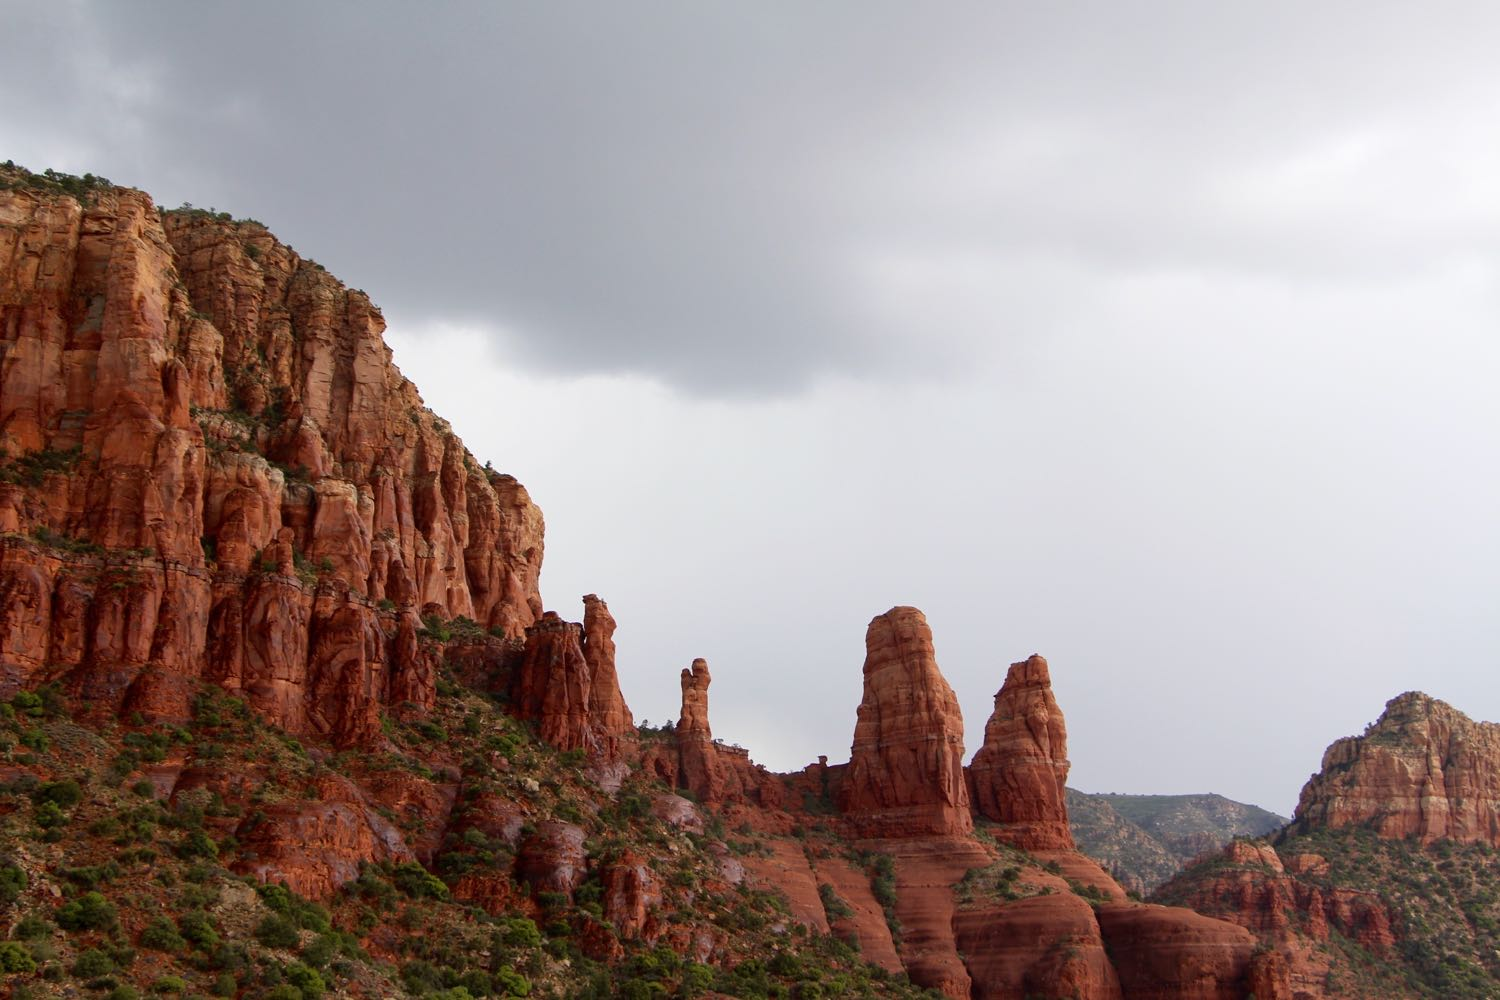 The red rocks of Sedona provide an inspiring backdrop for your Arizona team building event